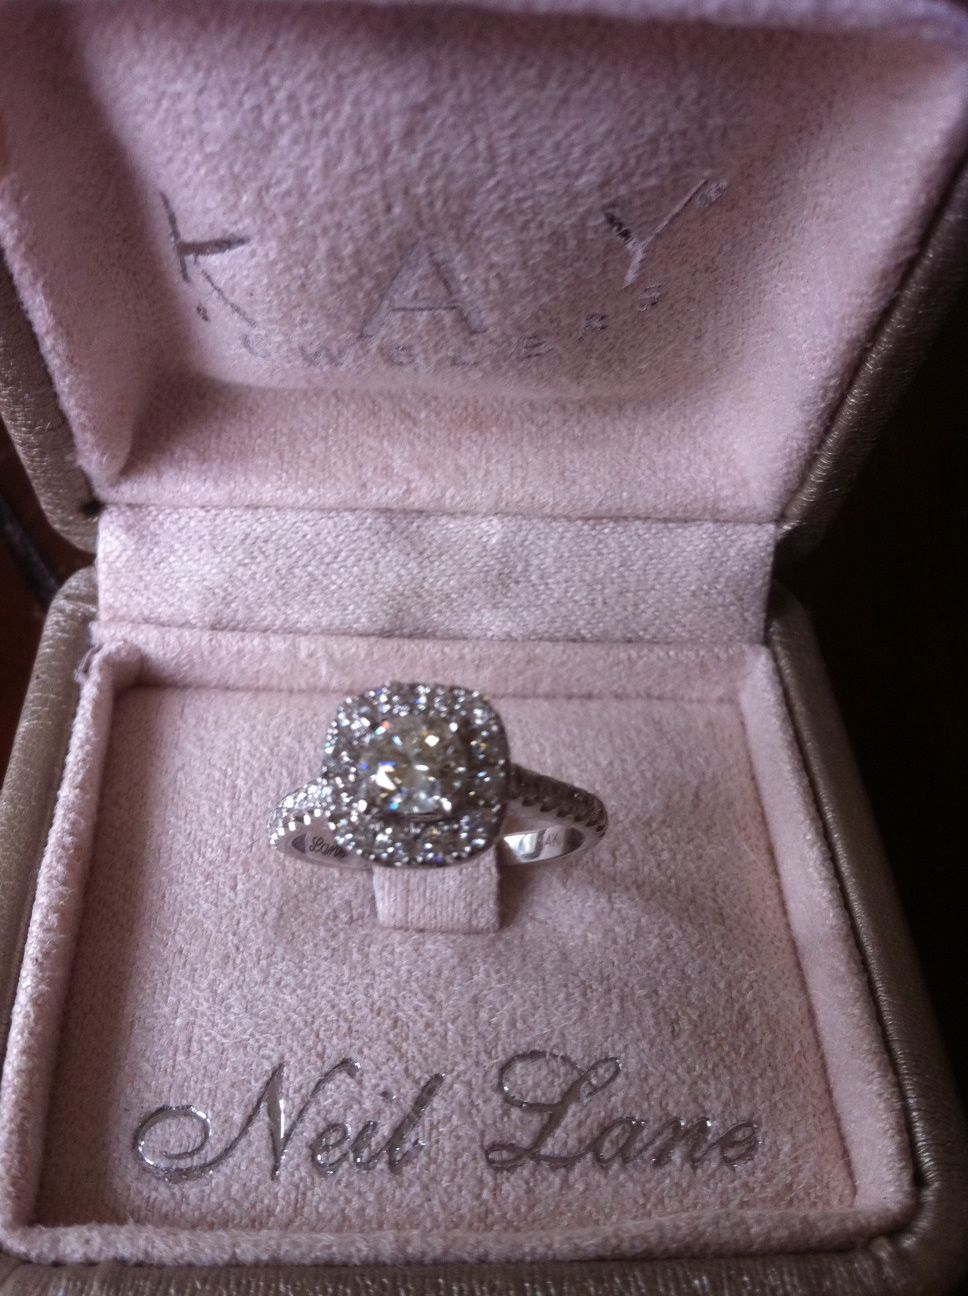 Engagement Rings Neil Lane Bridal Kay Jewelers OMG I LOVE HIM TIRED A RING LIKE THIS ON